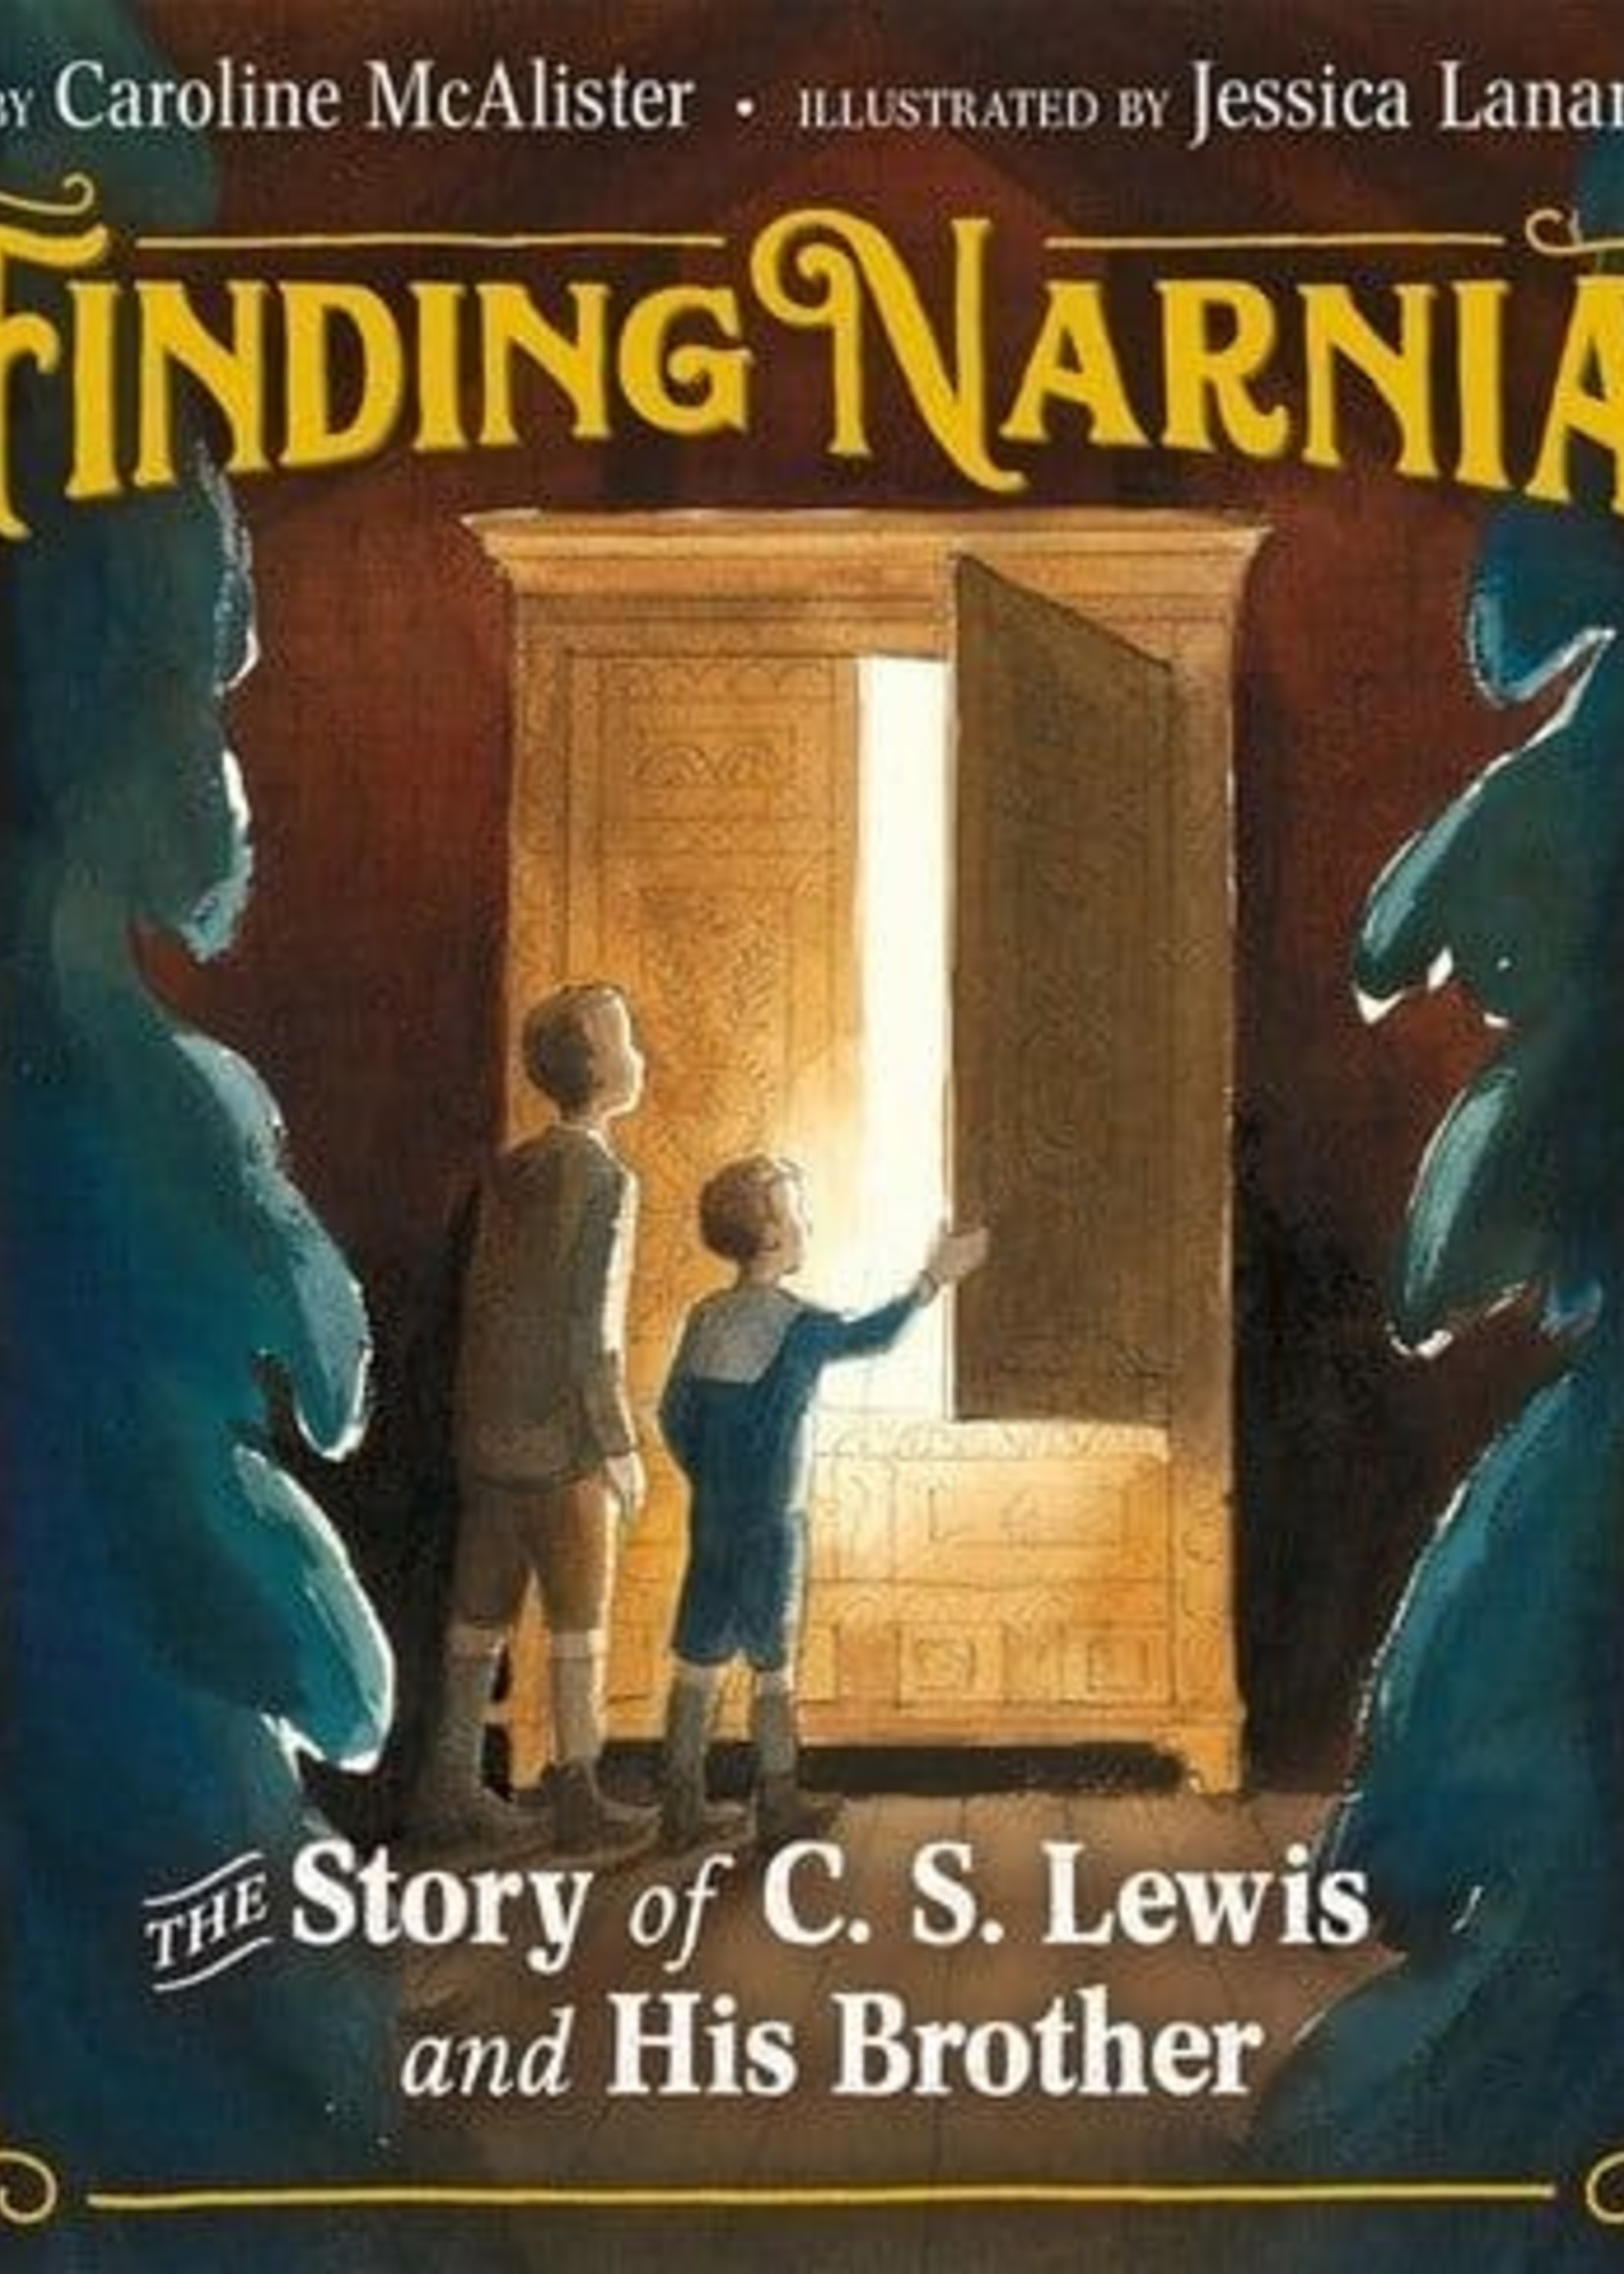 Finding Narnia: The Story of C. S. Lewis and His Brother Warnie - HC